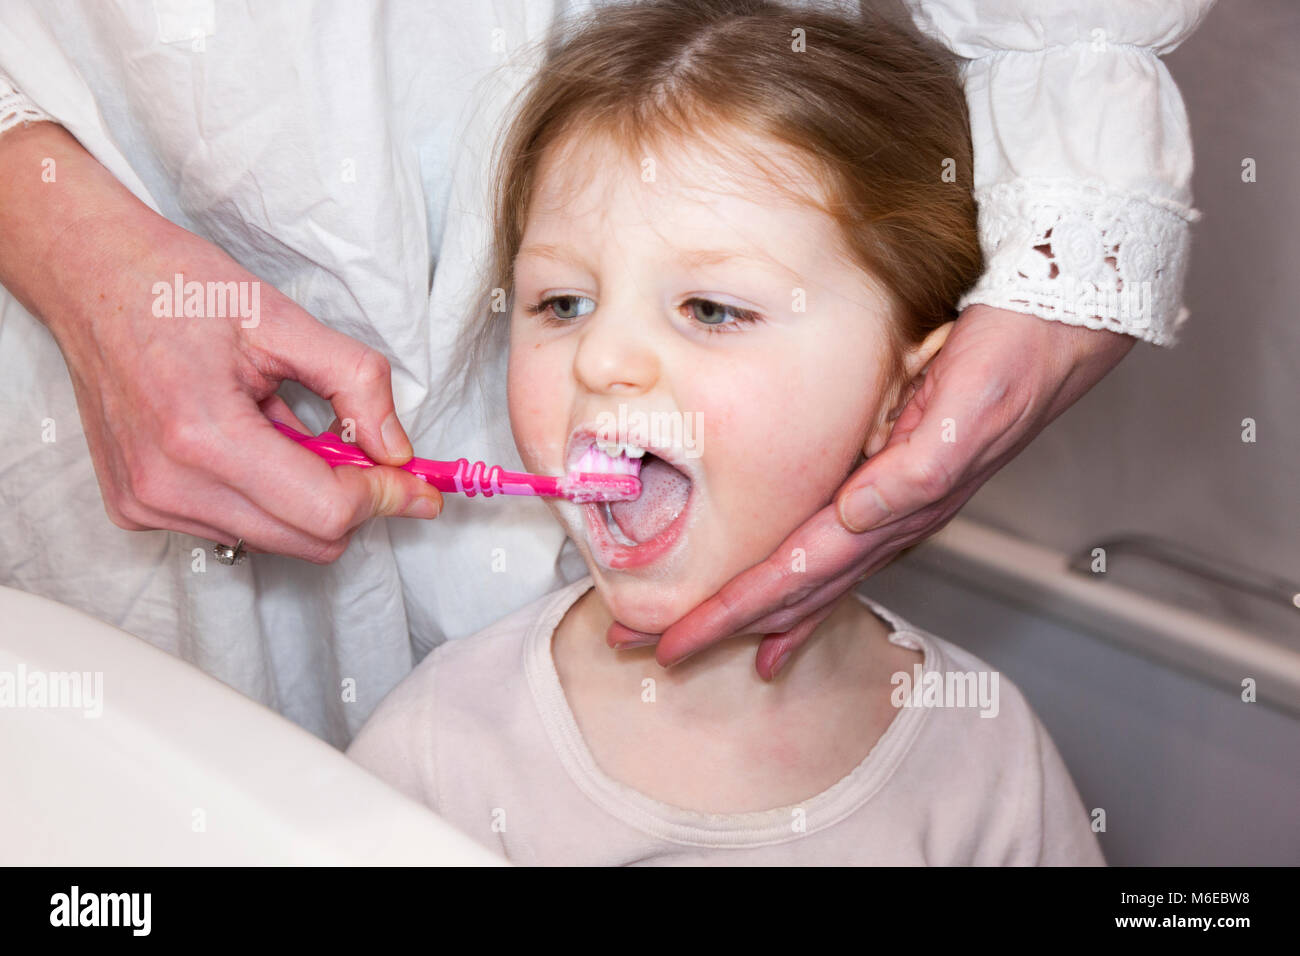 Three year old child / kid aged 3 years having her milk teeth brushed with a toothbrush / tooth brush - by her mother - Stock Image